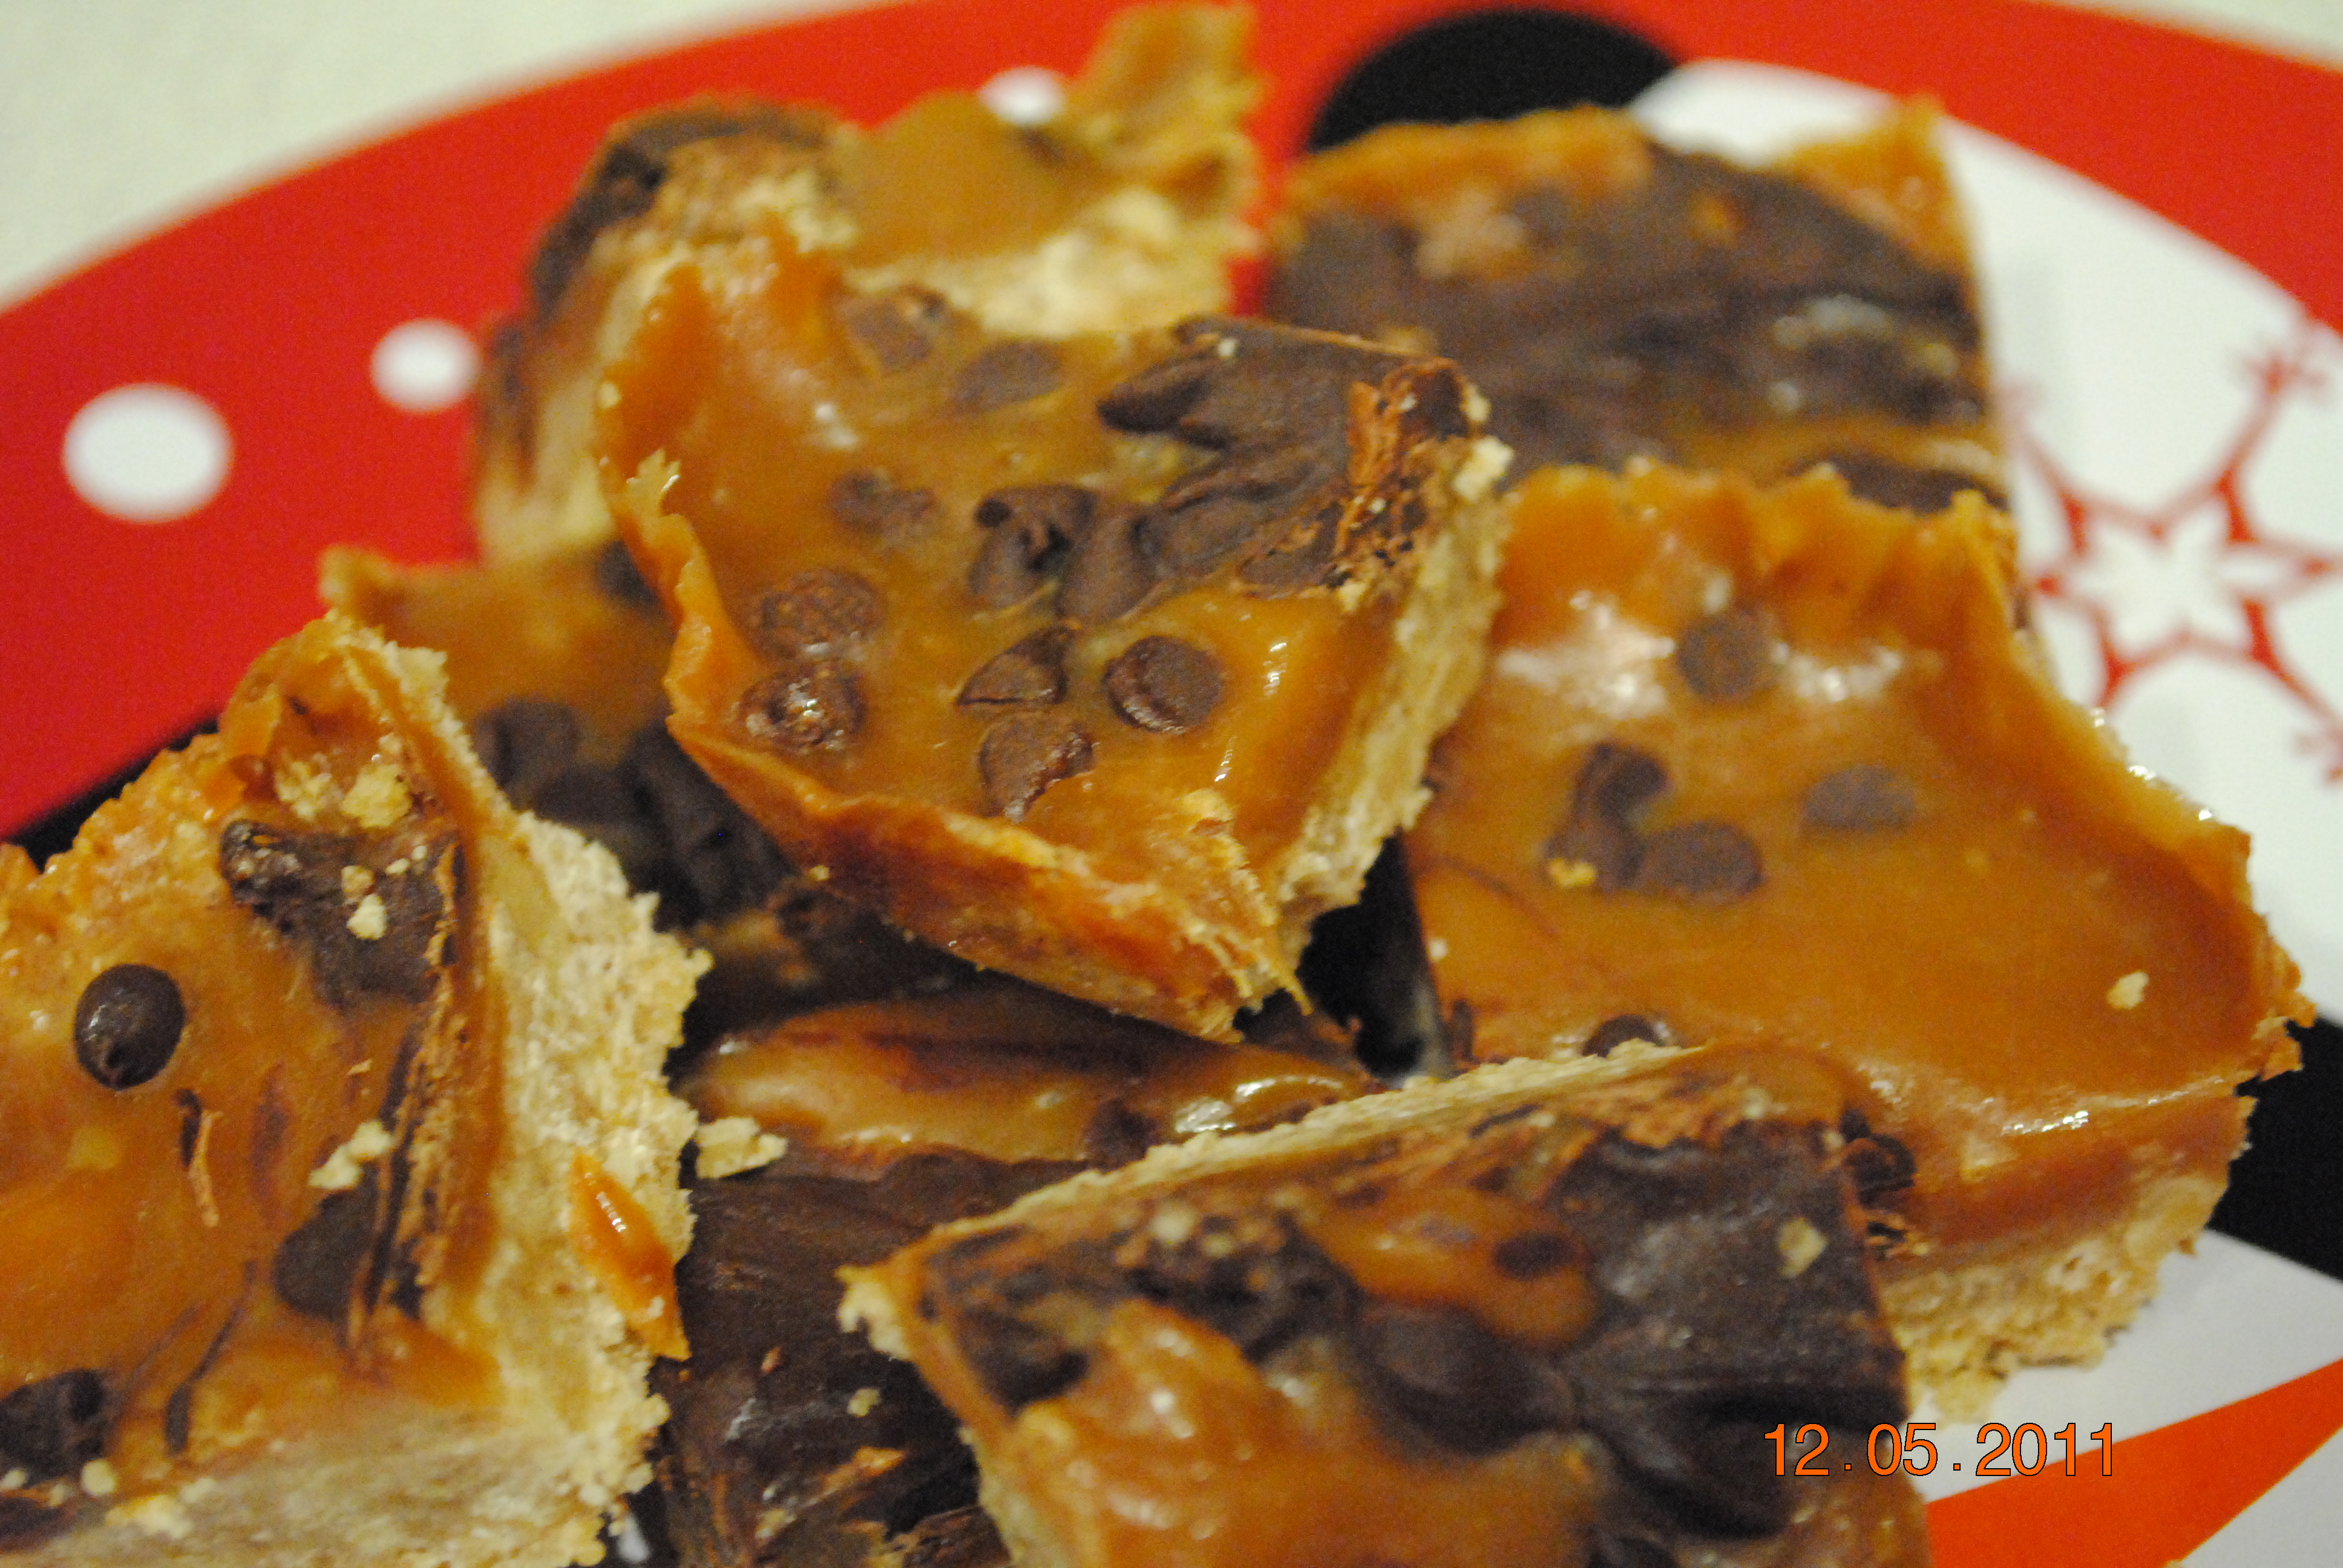 Recipes Course Desserts Cookies and Bars Jodie's Pecan Turtle Bars